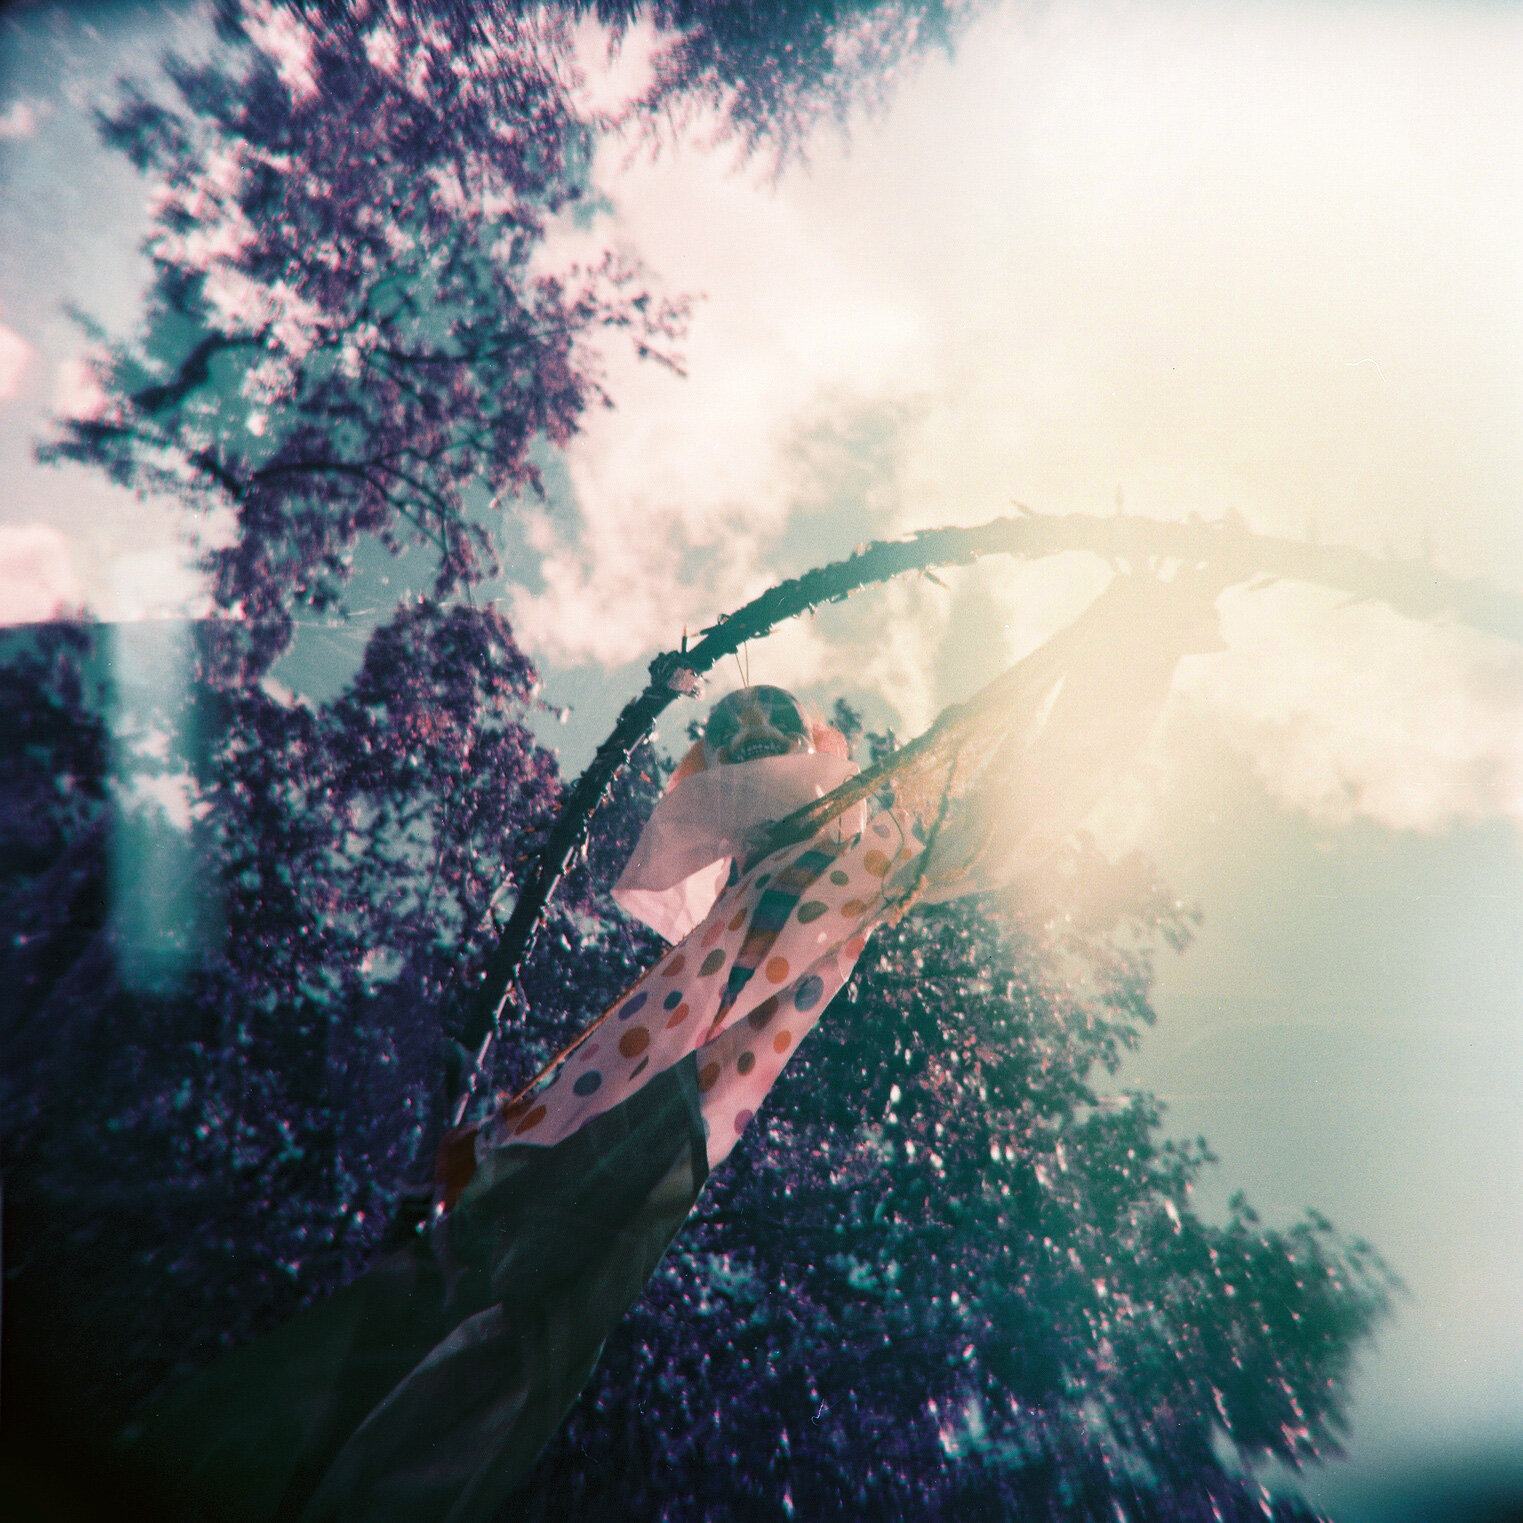 凯蒂·格雷格里(Katie Gregory)-It_Holga120N_KatieMollon.jpg